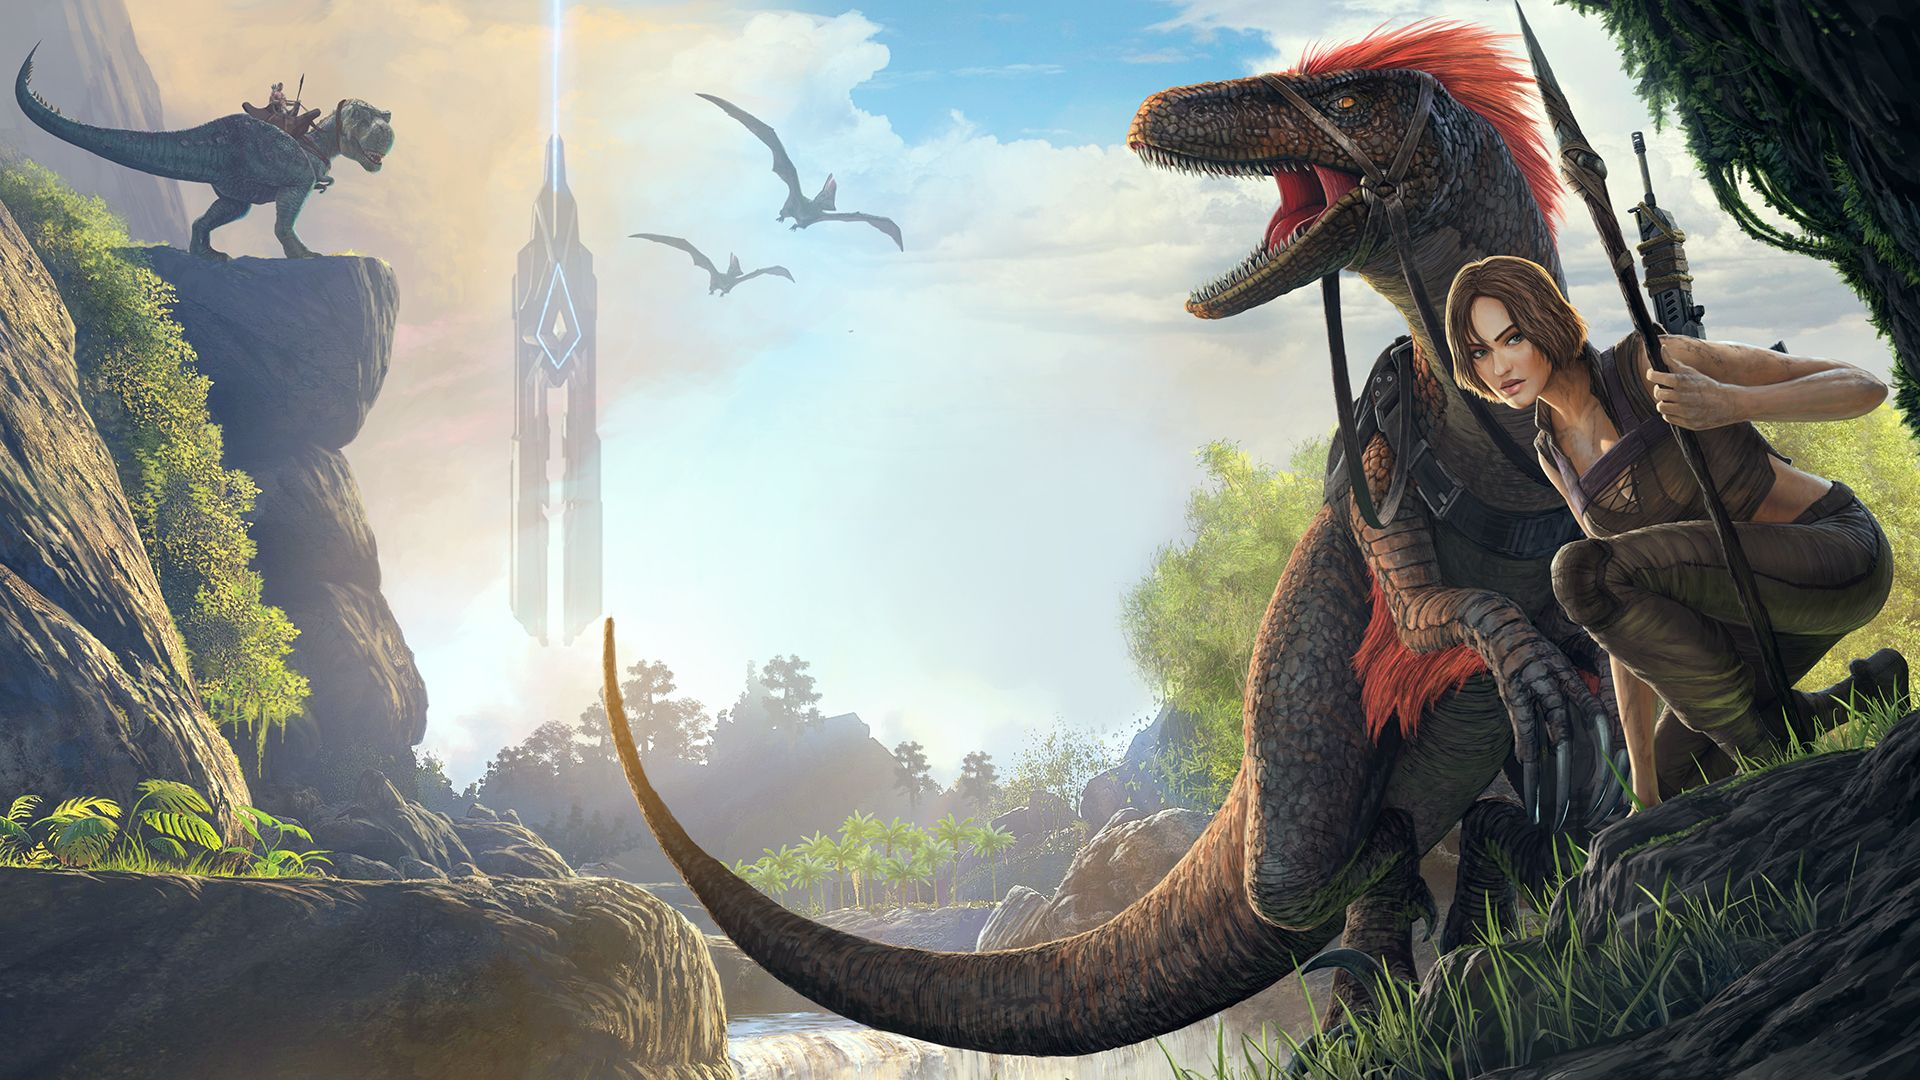 Ark Survival Evolved Backgrounds: 'ARK: Survival Evolved' Nintendo Switch Release Coming